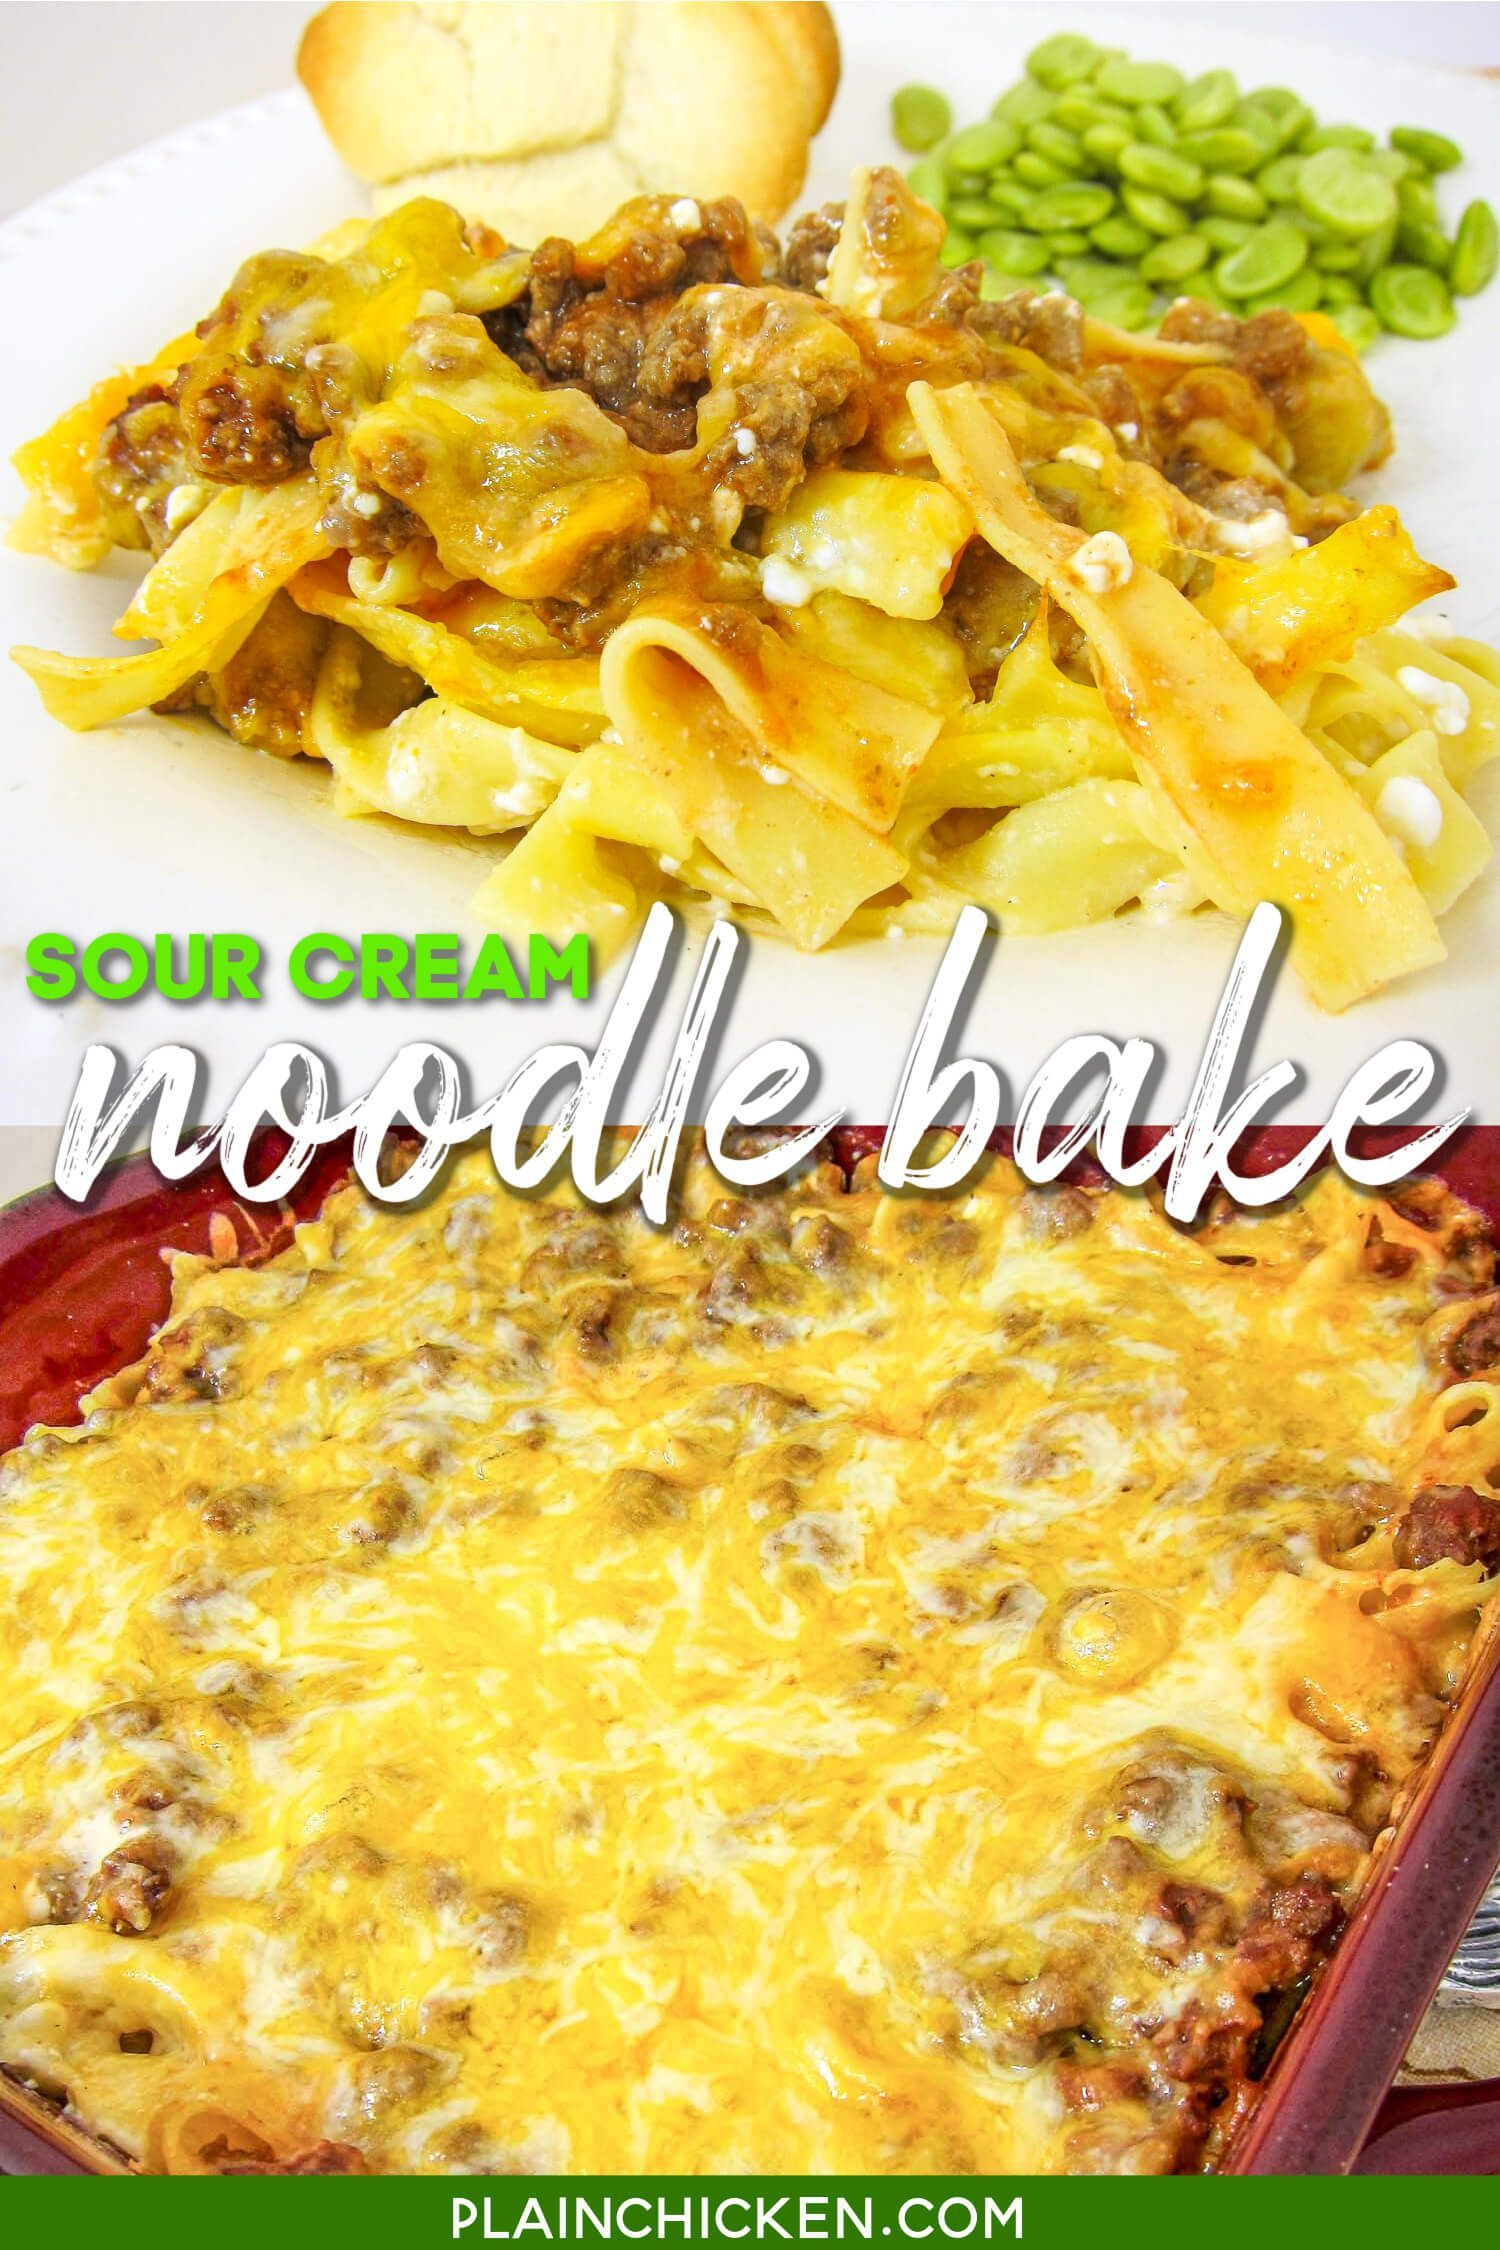 Sour Cream Noodle Bake Plain Chicken In 2020 Sour Cream Noodle Bake Comfort Food Recipes Casseroles Poultry Recipes